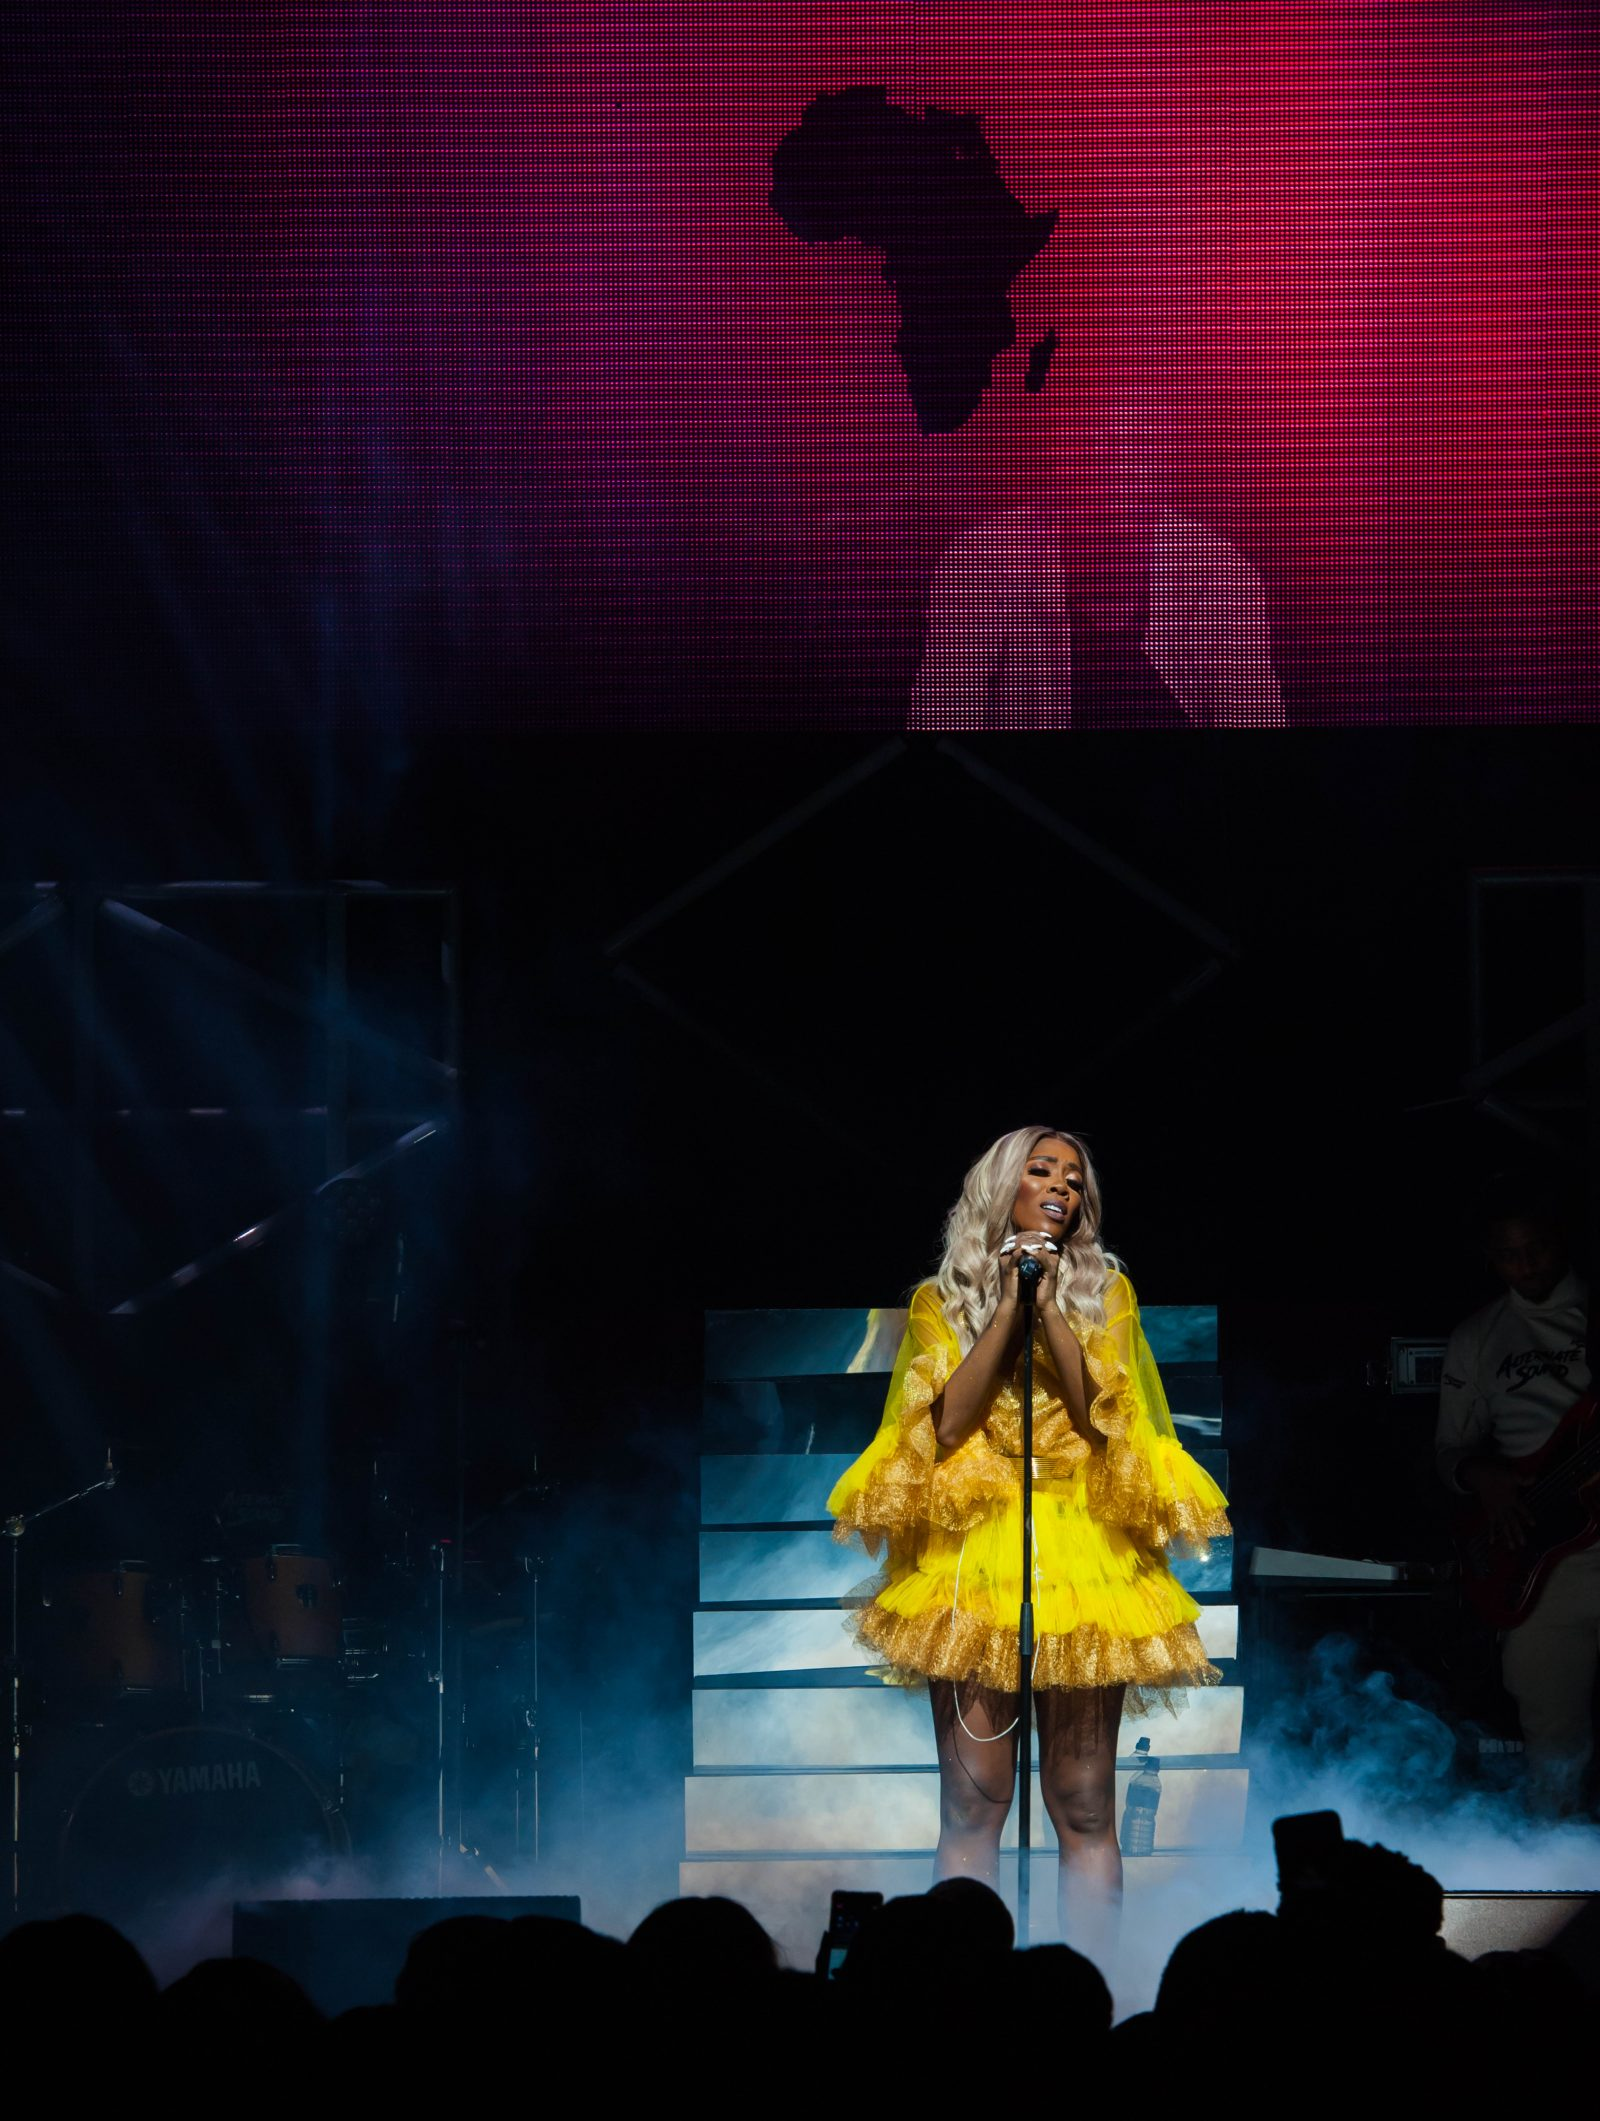 Indigo at The O2, London, United Kingdom. 24th August 2018. Tiwa Savage performs on stage for her First solo concert at indigo O2.